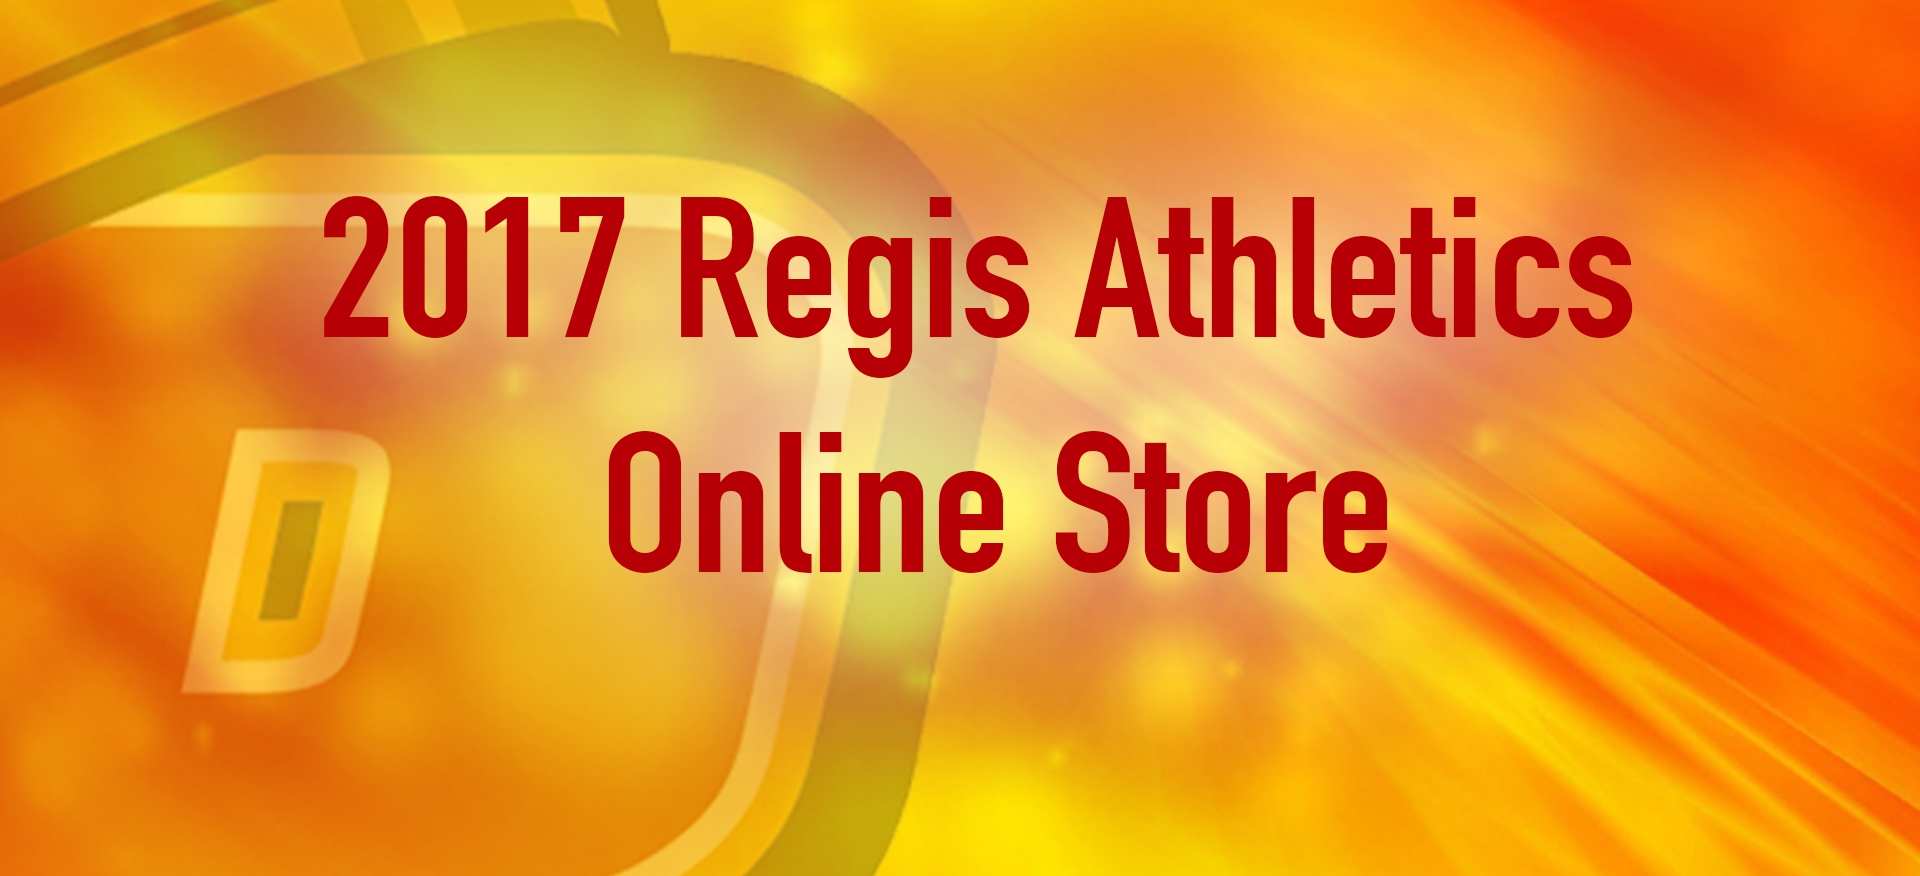 Regis Athletics Launches Limited Time Online Store